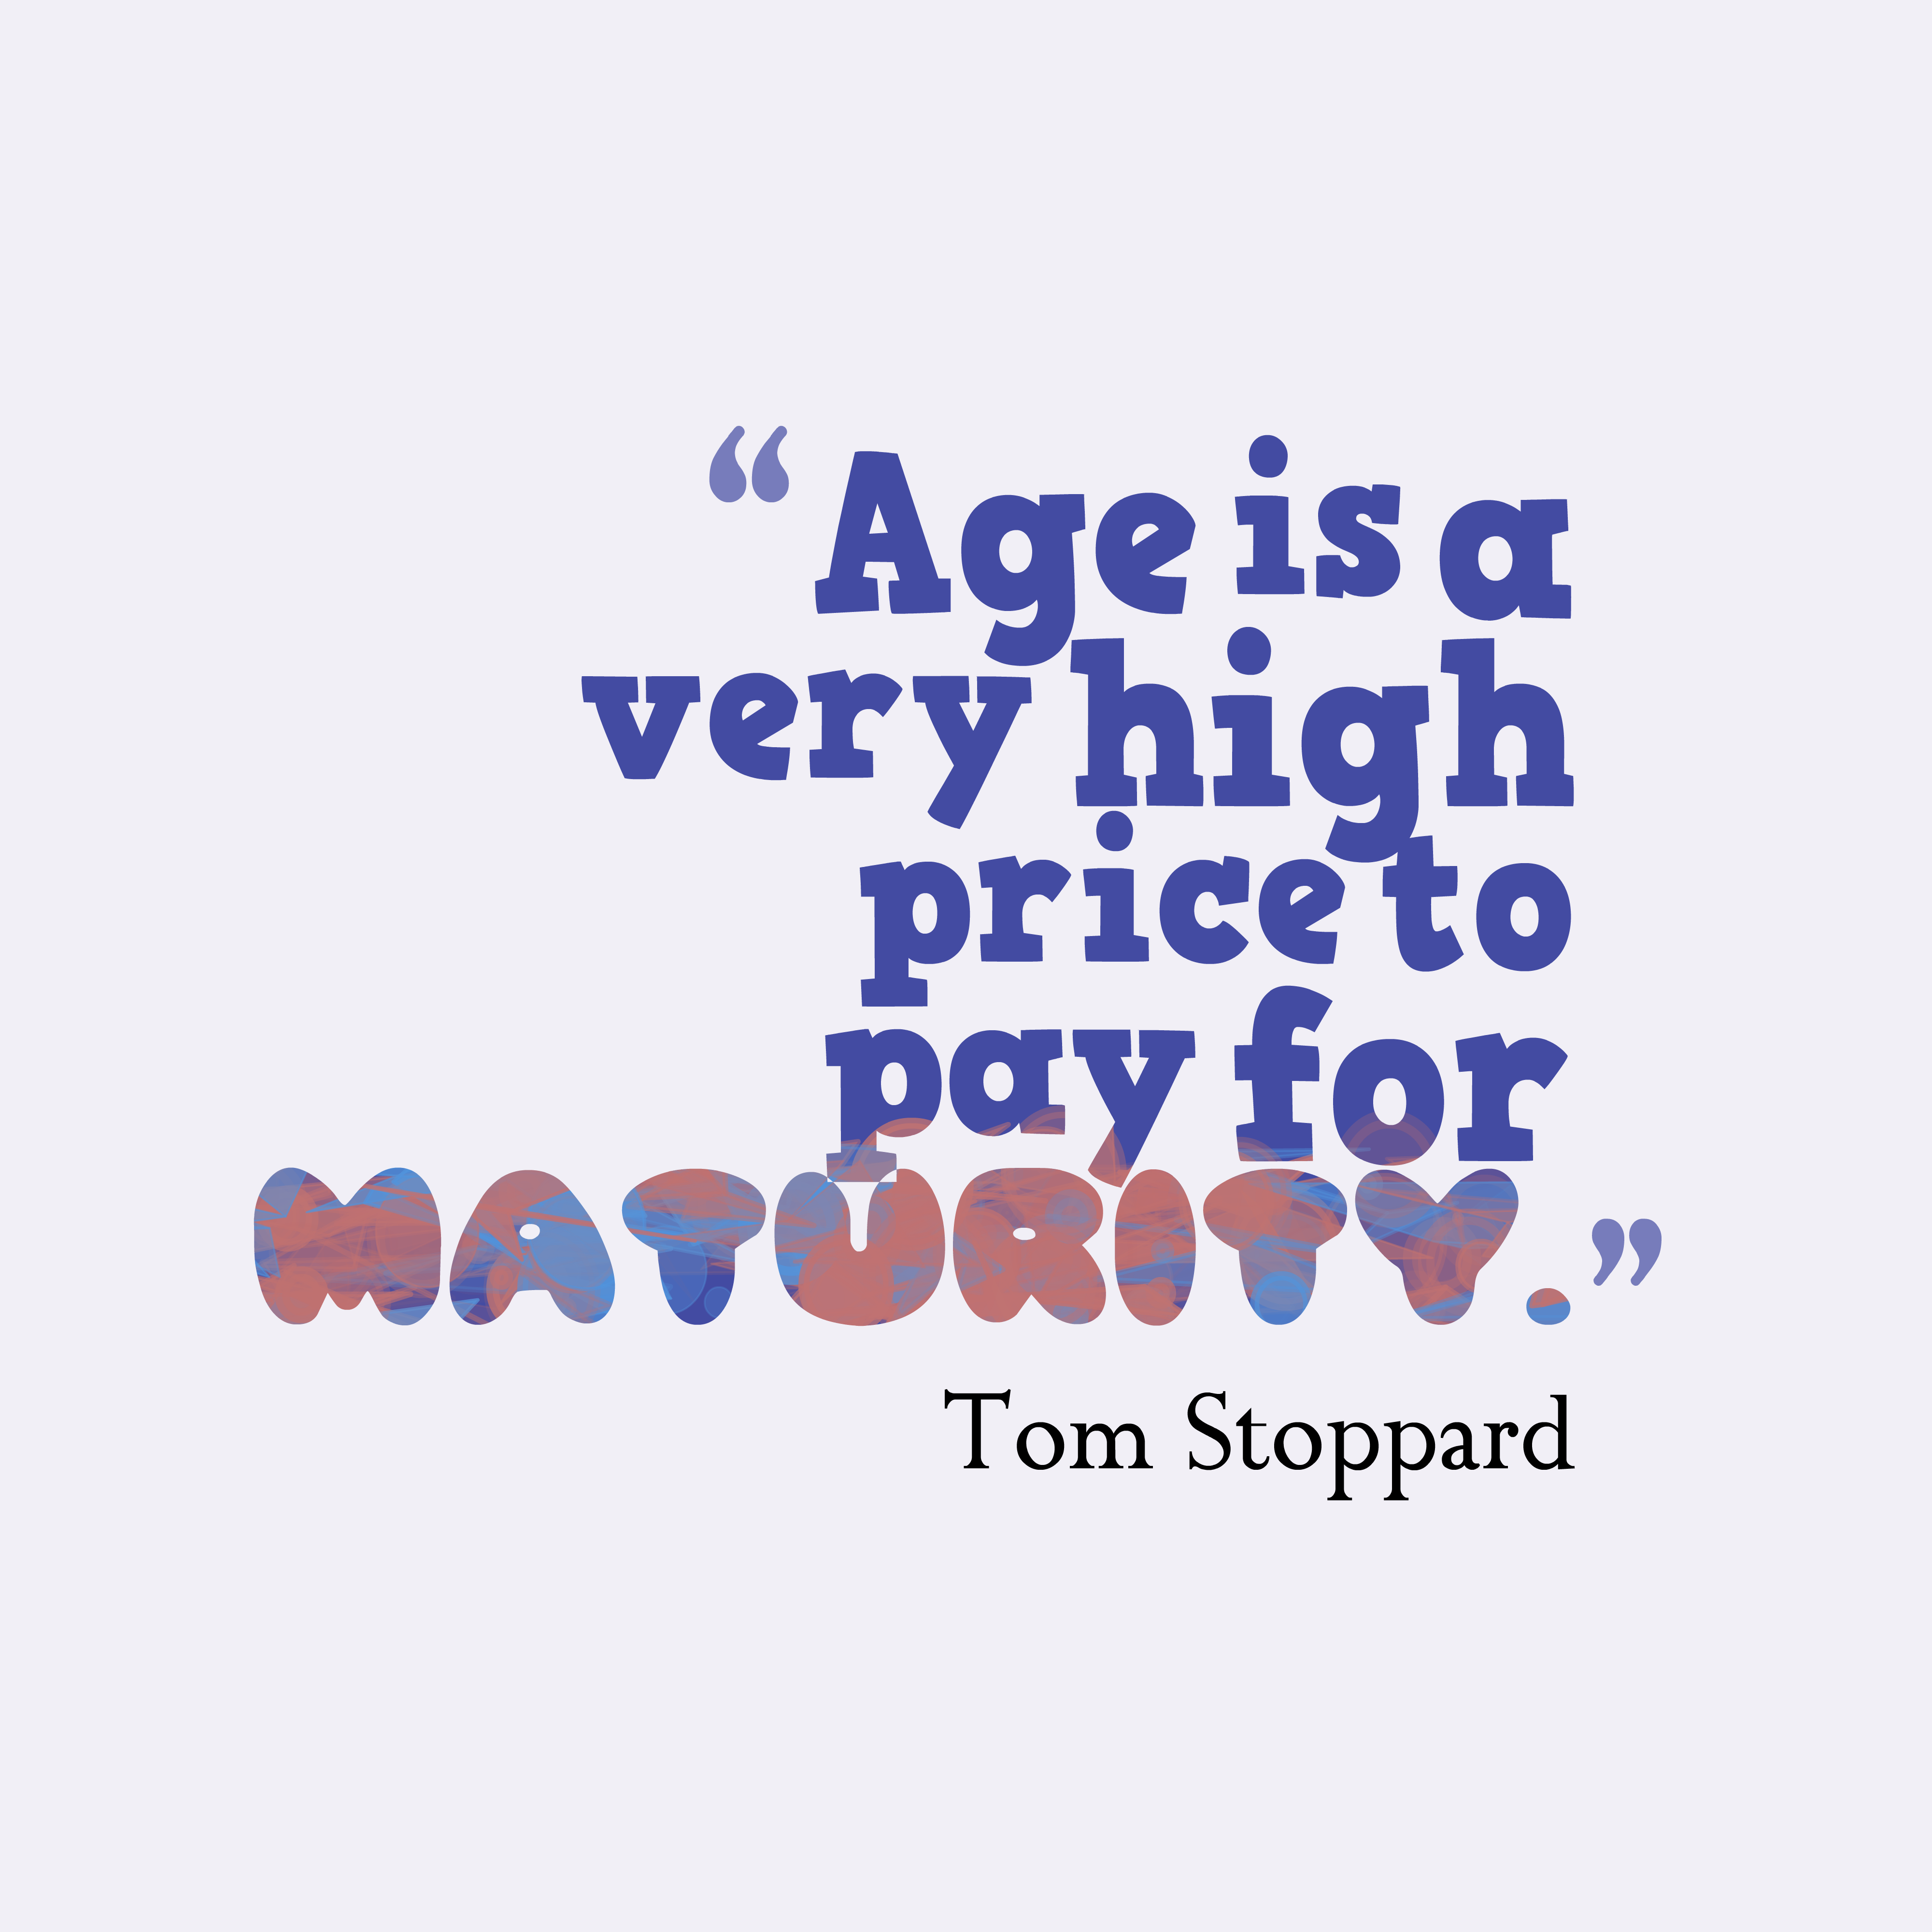 Tom Stoppard Quote About Age